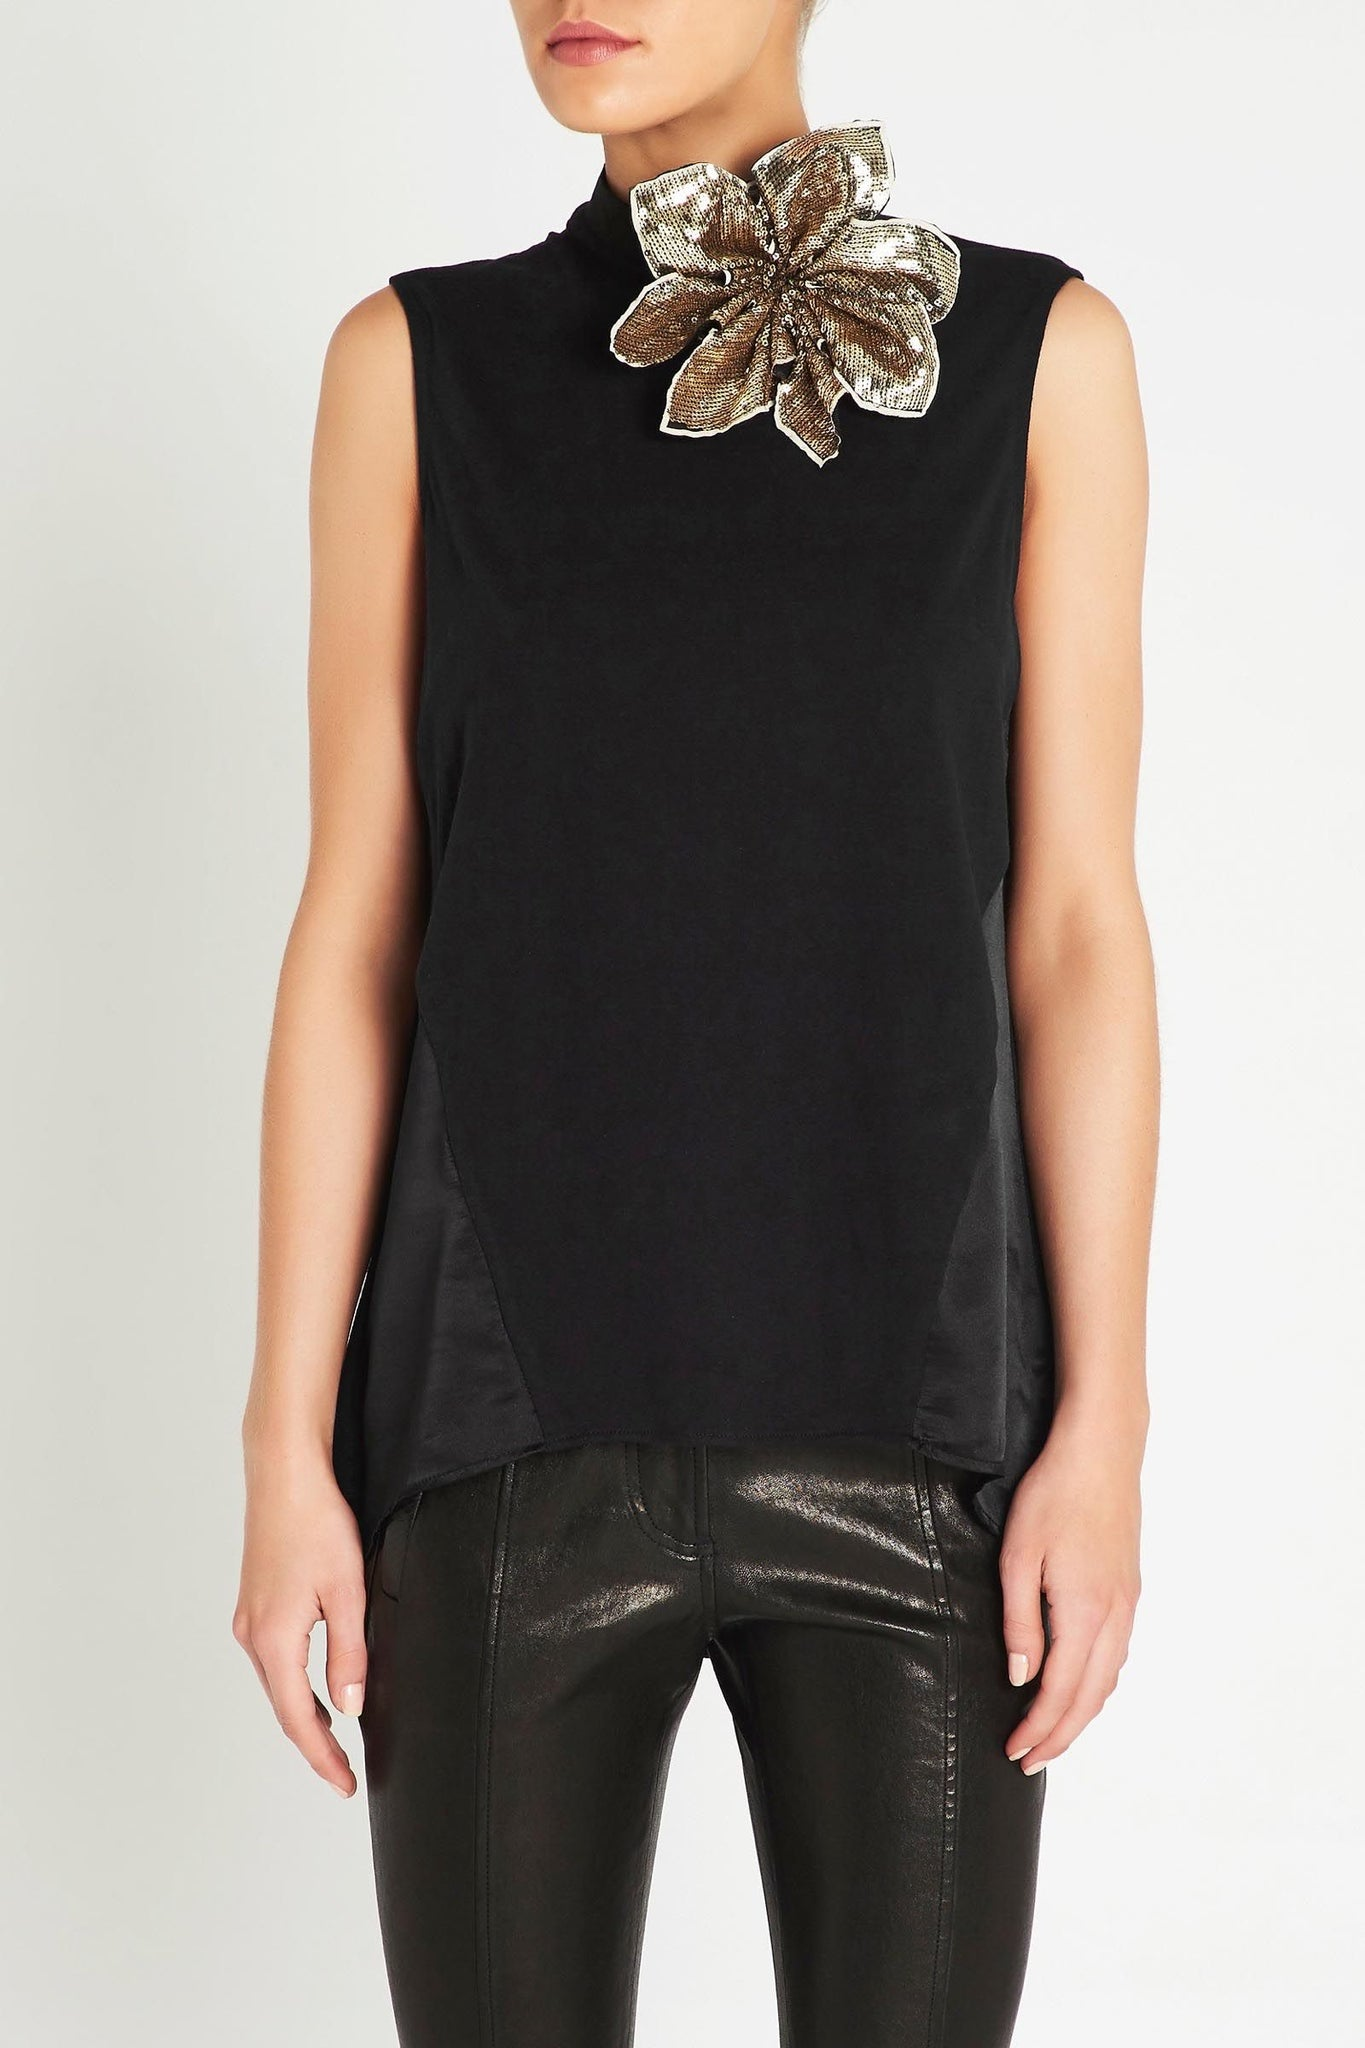 SASS & BIDE RETURN TO AIR TEE - sisterfield